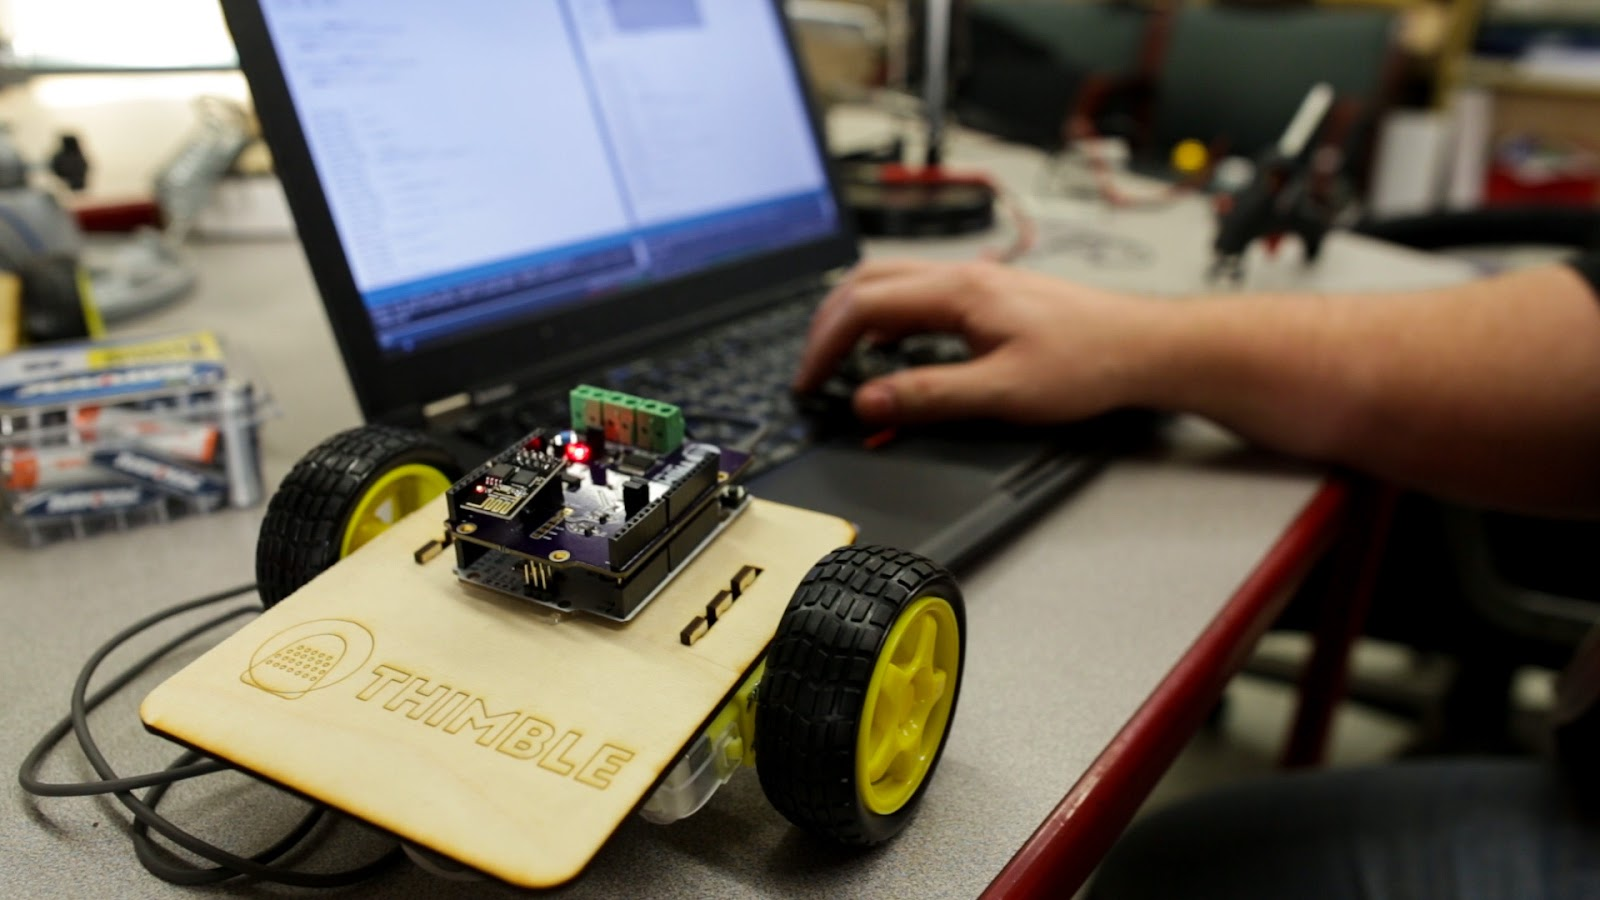 A completed wifi robot kit sits on a table next to an open lap top.